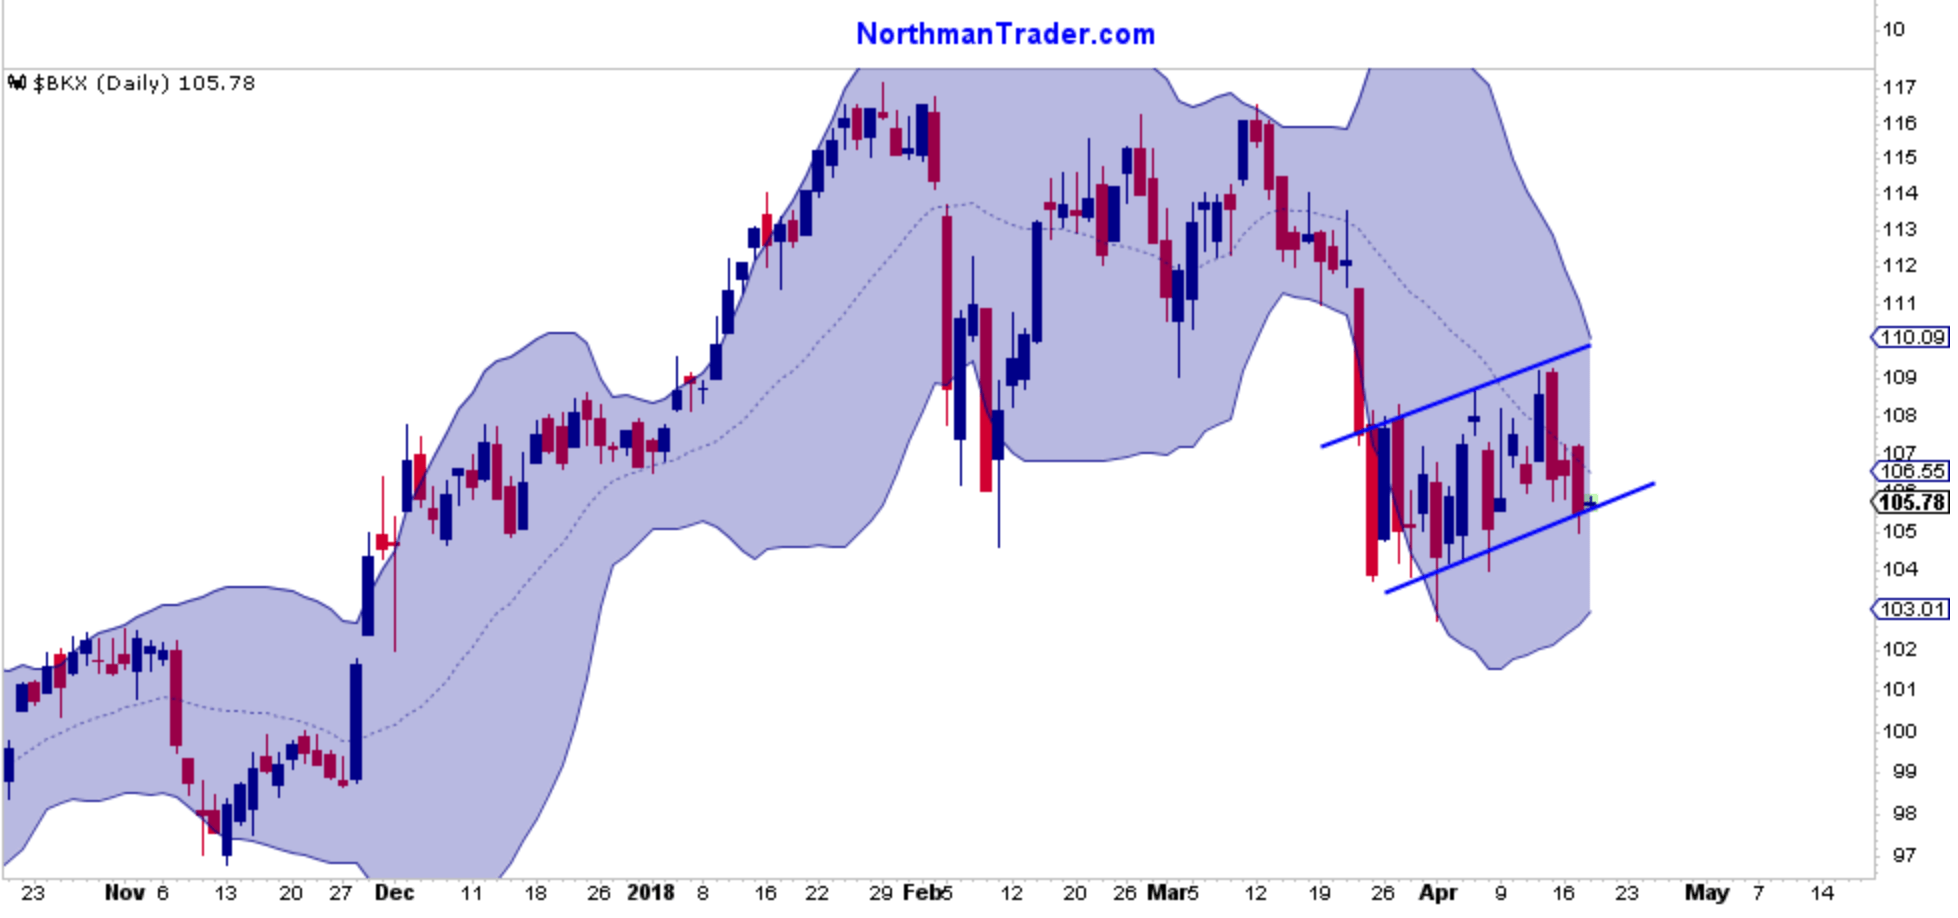 Gs goldman sachs group inc gs stock price trade ideas whotrades gs reported record earnings it remains below the 50ma for now also suggesting a bear flag pattern nvjuhfo Gallery